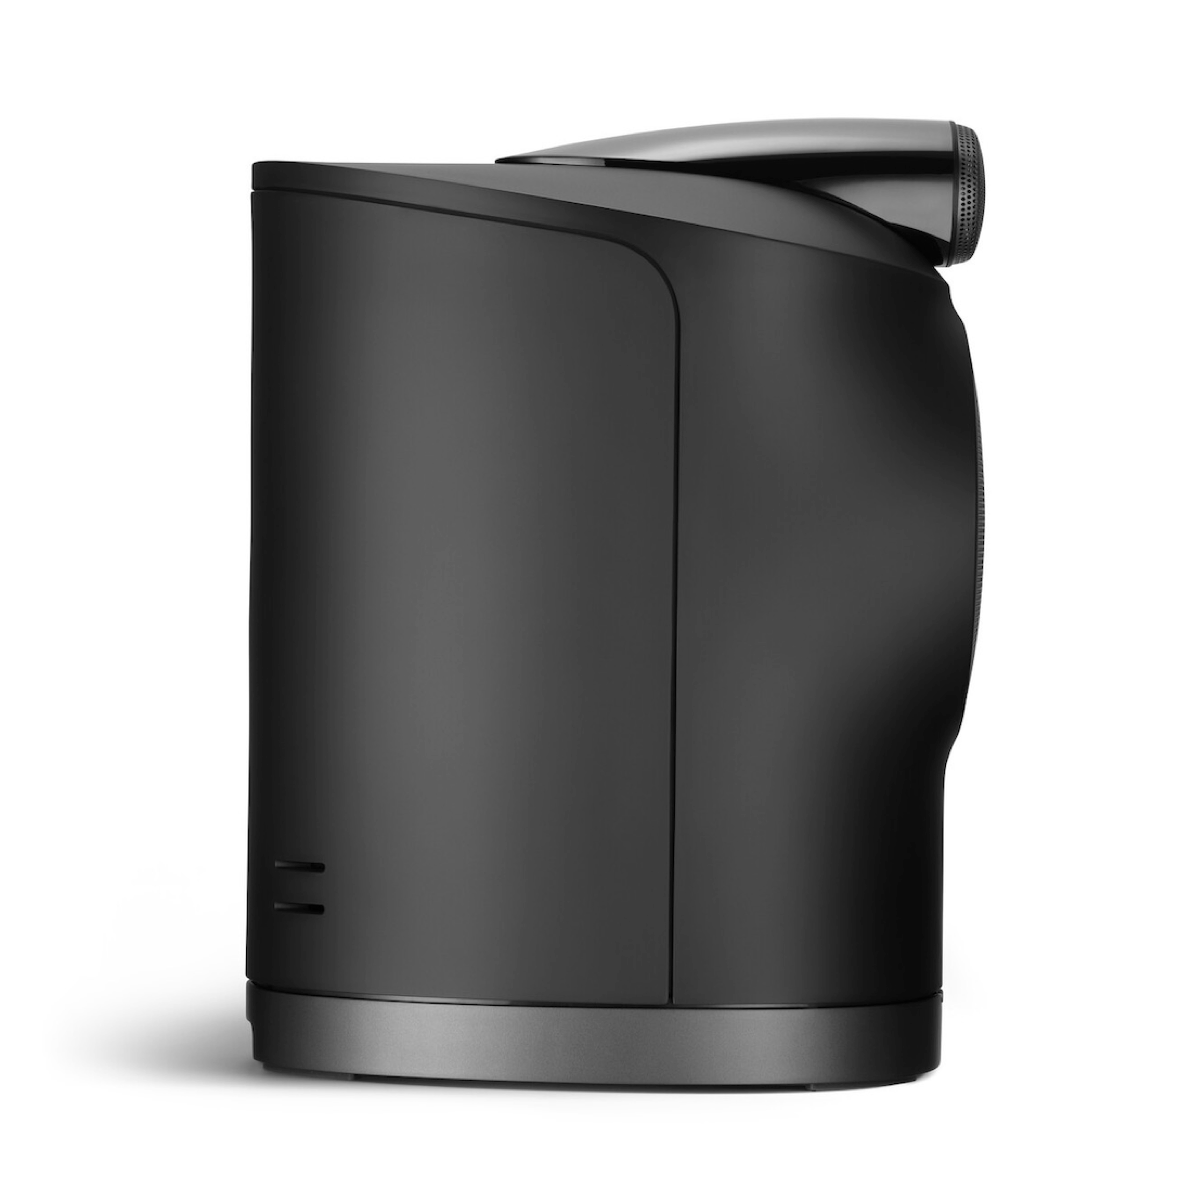 Bowers & Wilkins - Formation Duo, Bowers & Wilkins, Bookshelf Speaker - AVStore.in